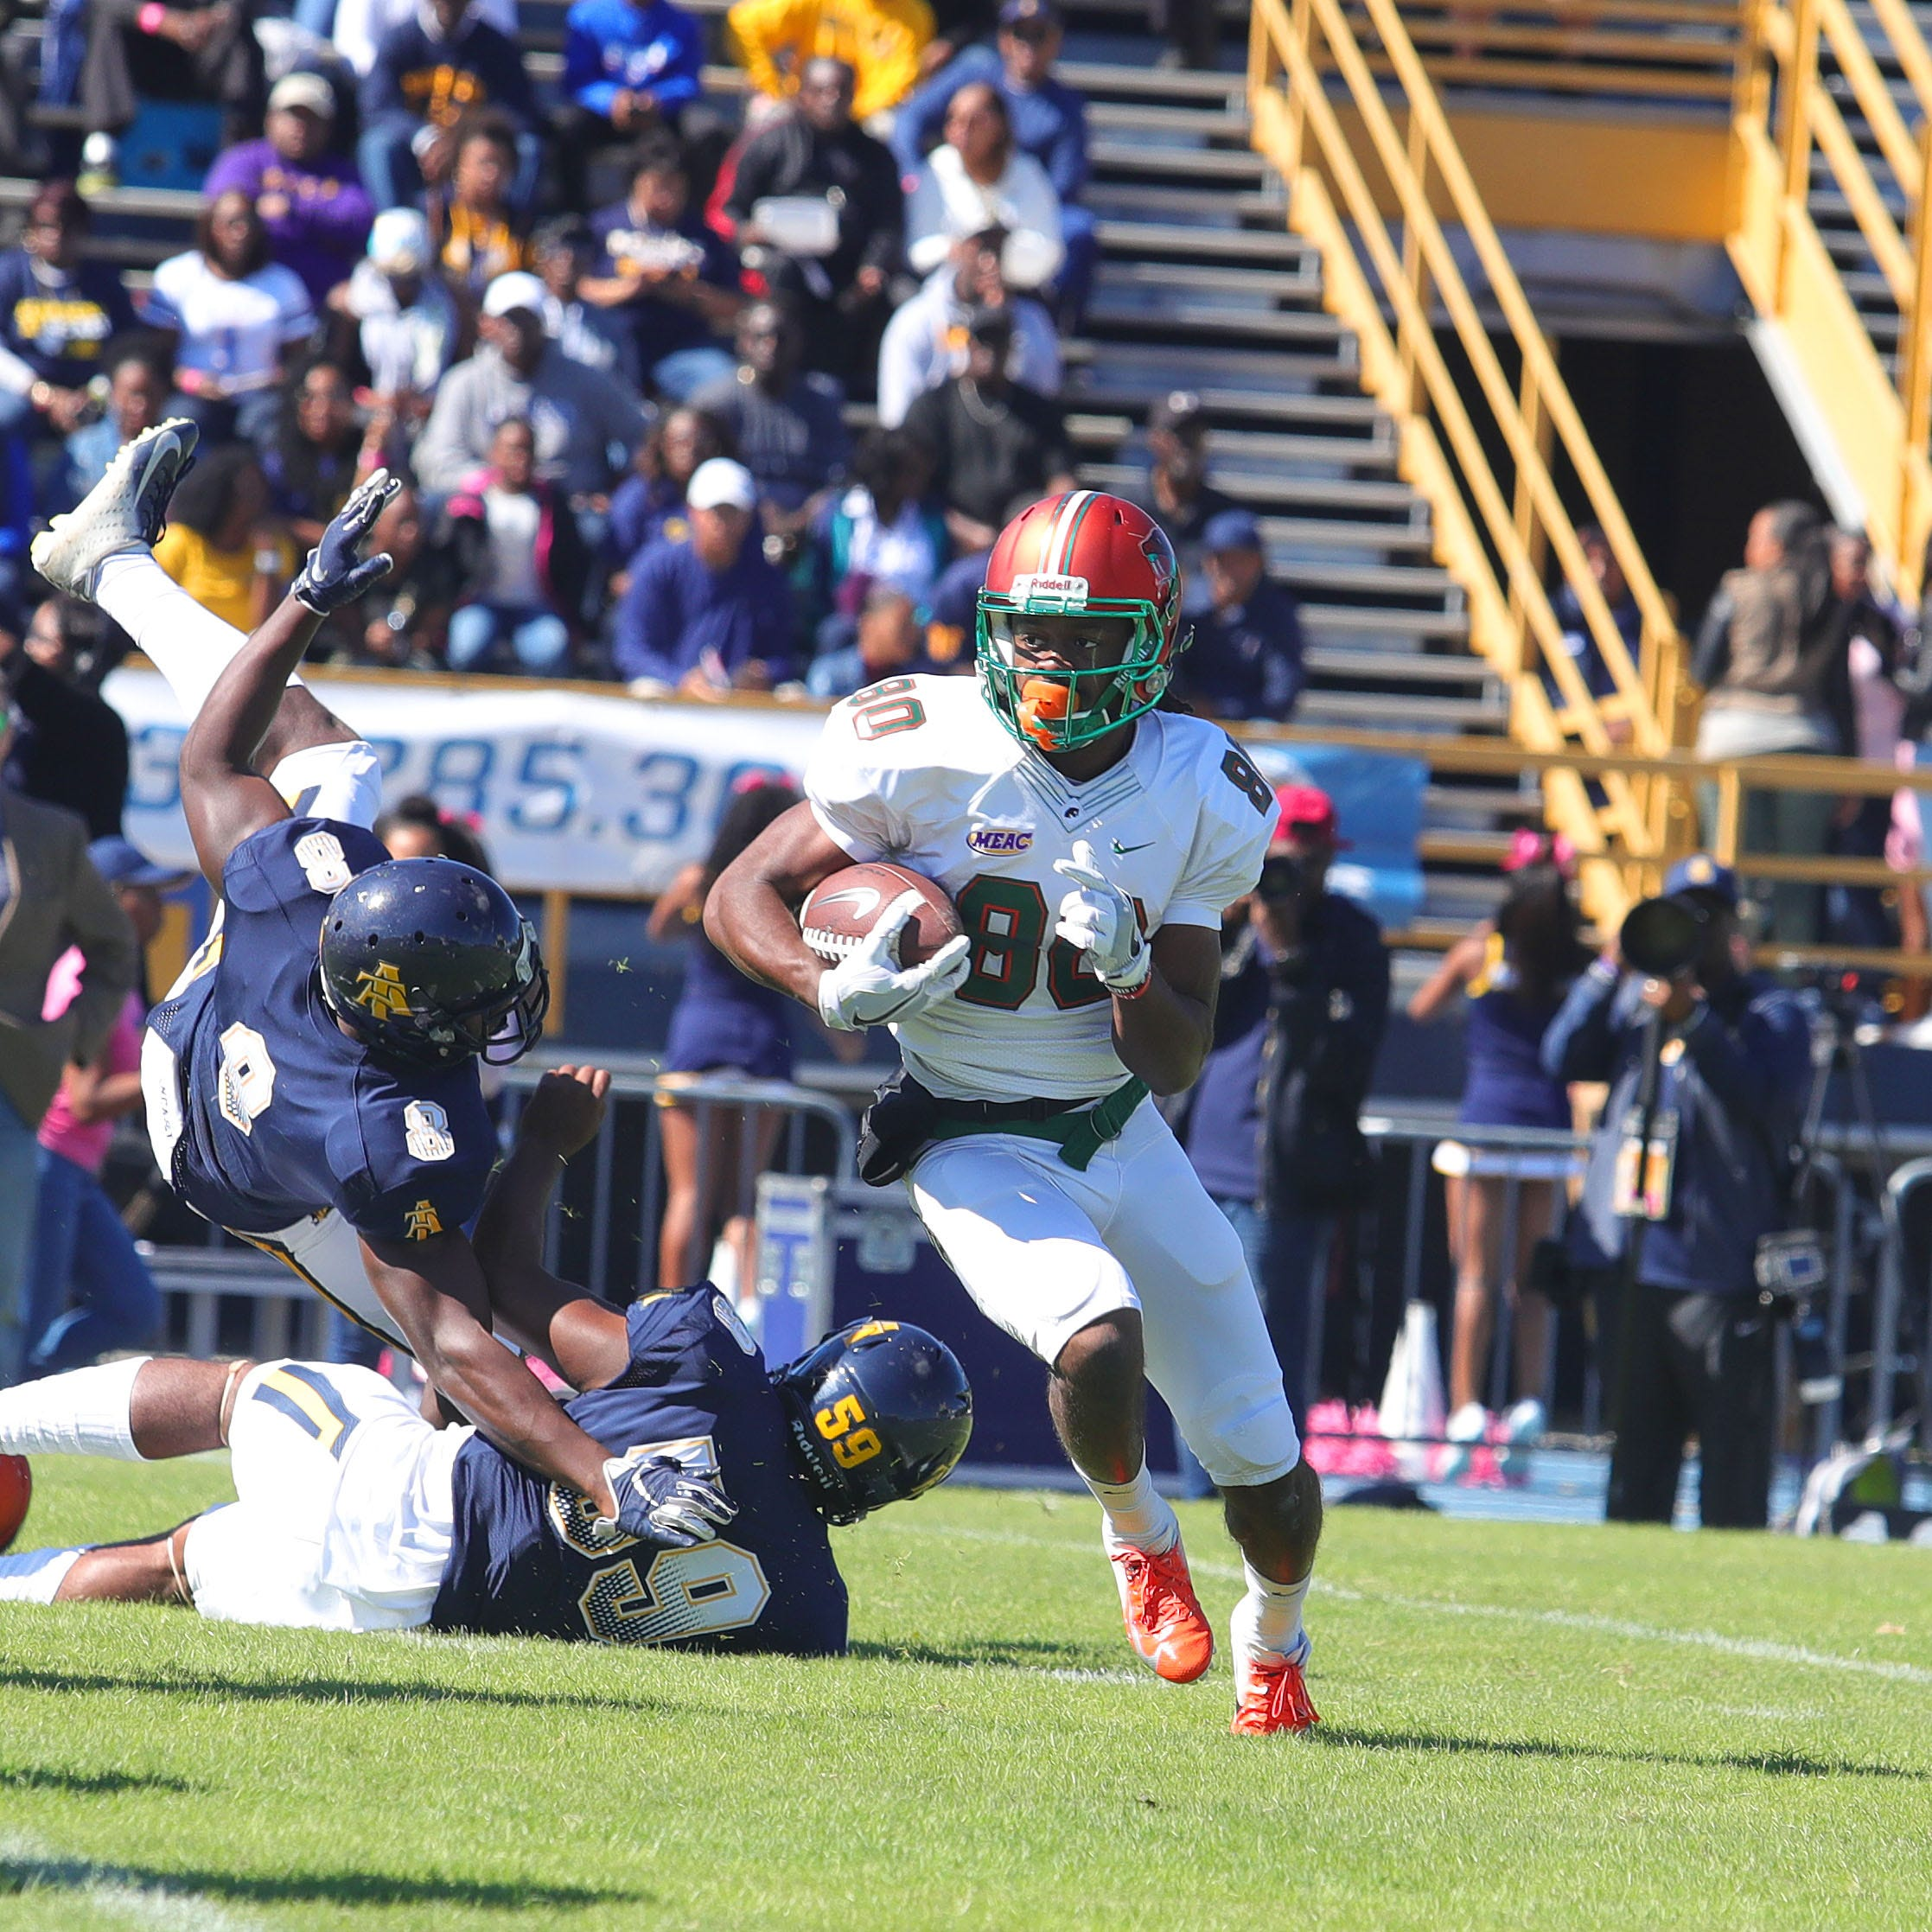 FAMU's individuals shine as the team continues to rise